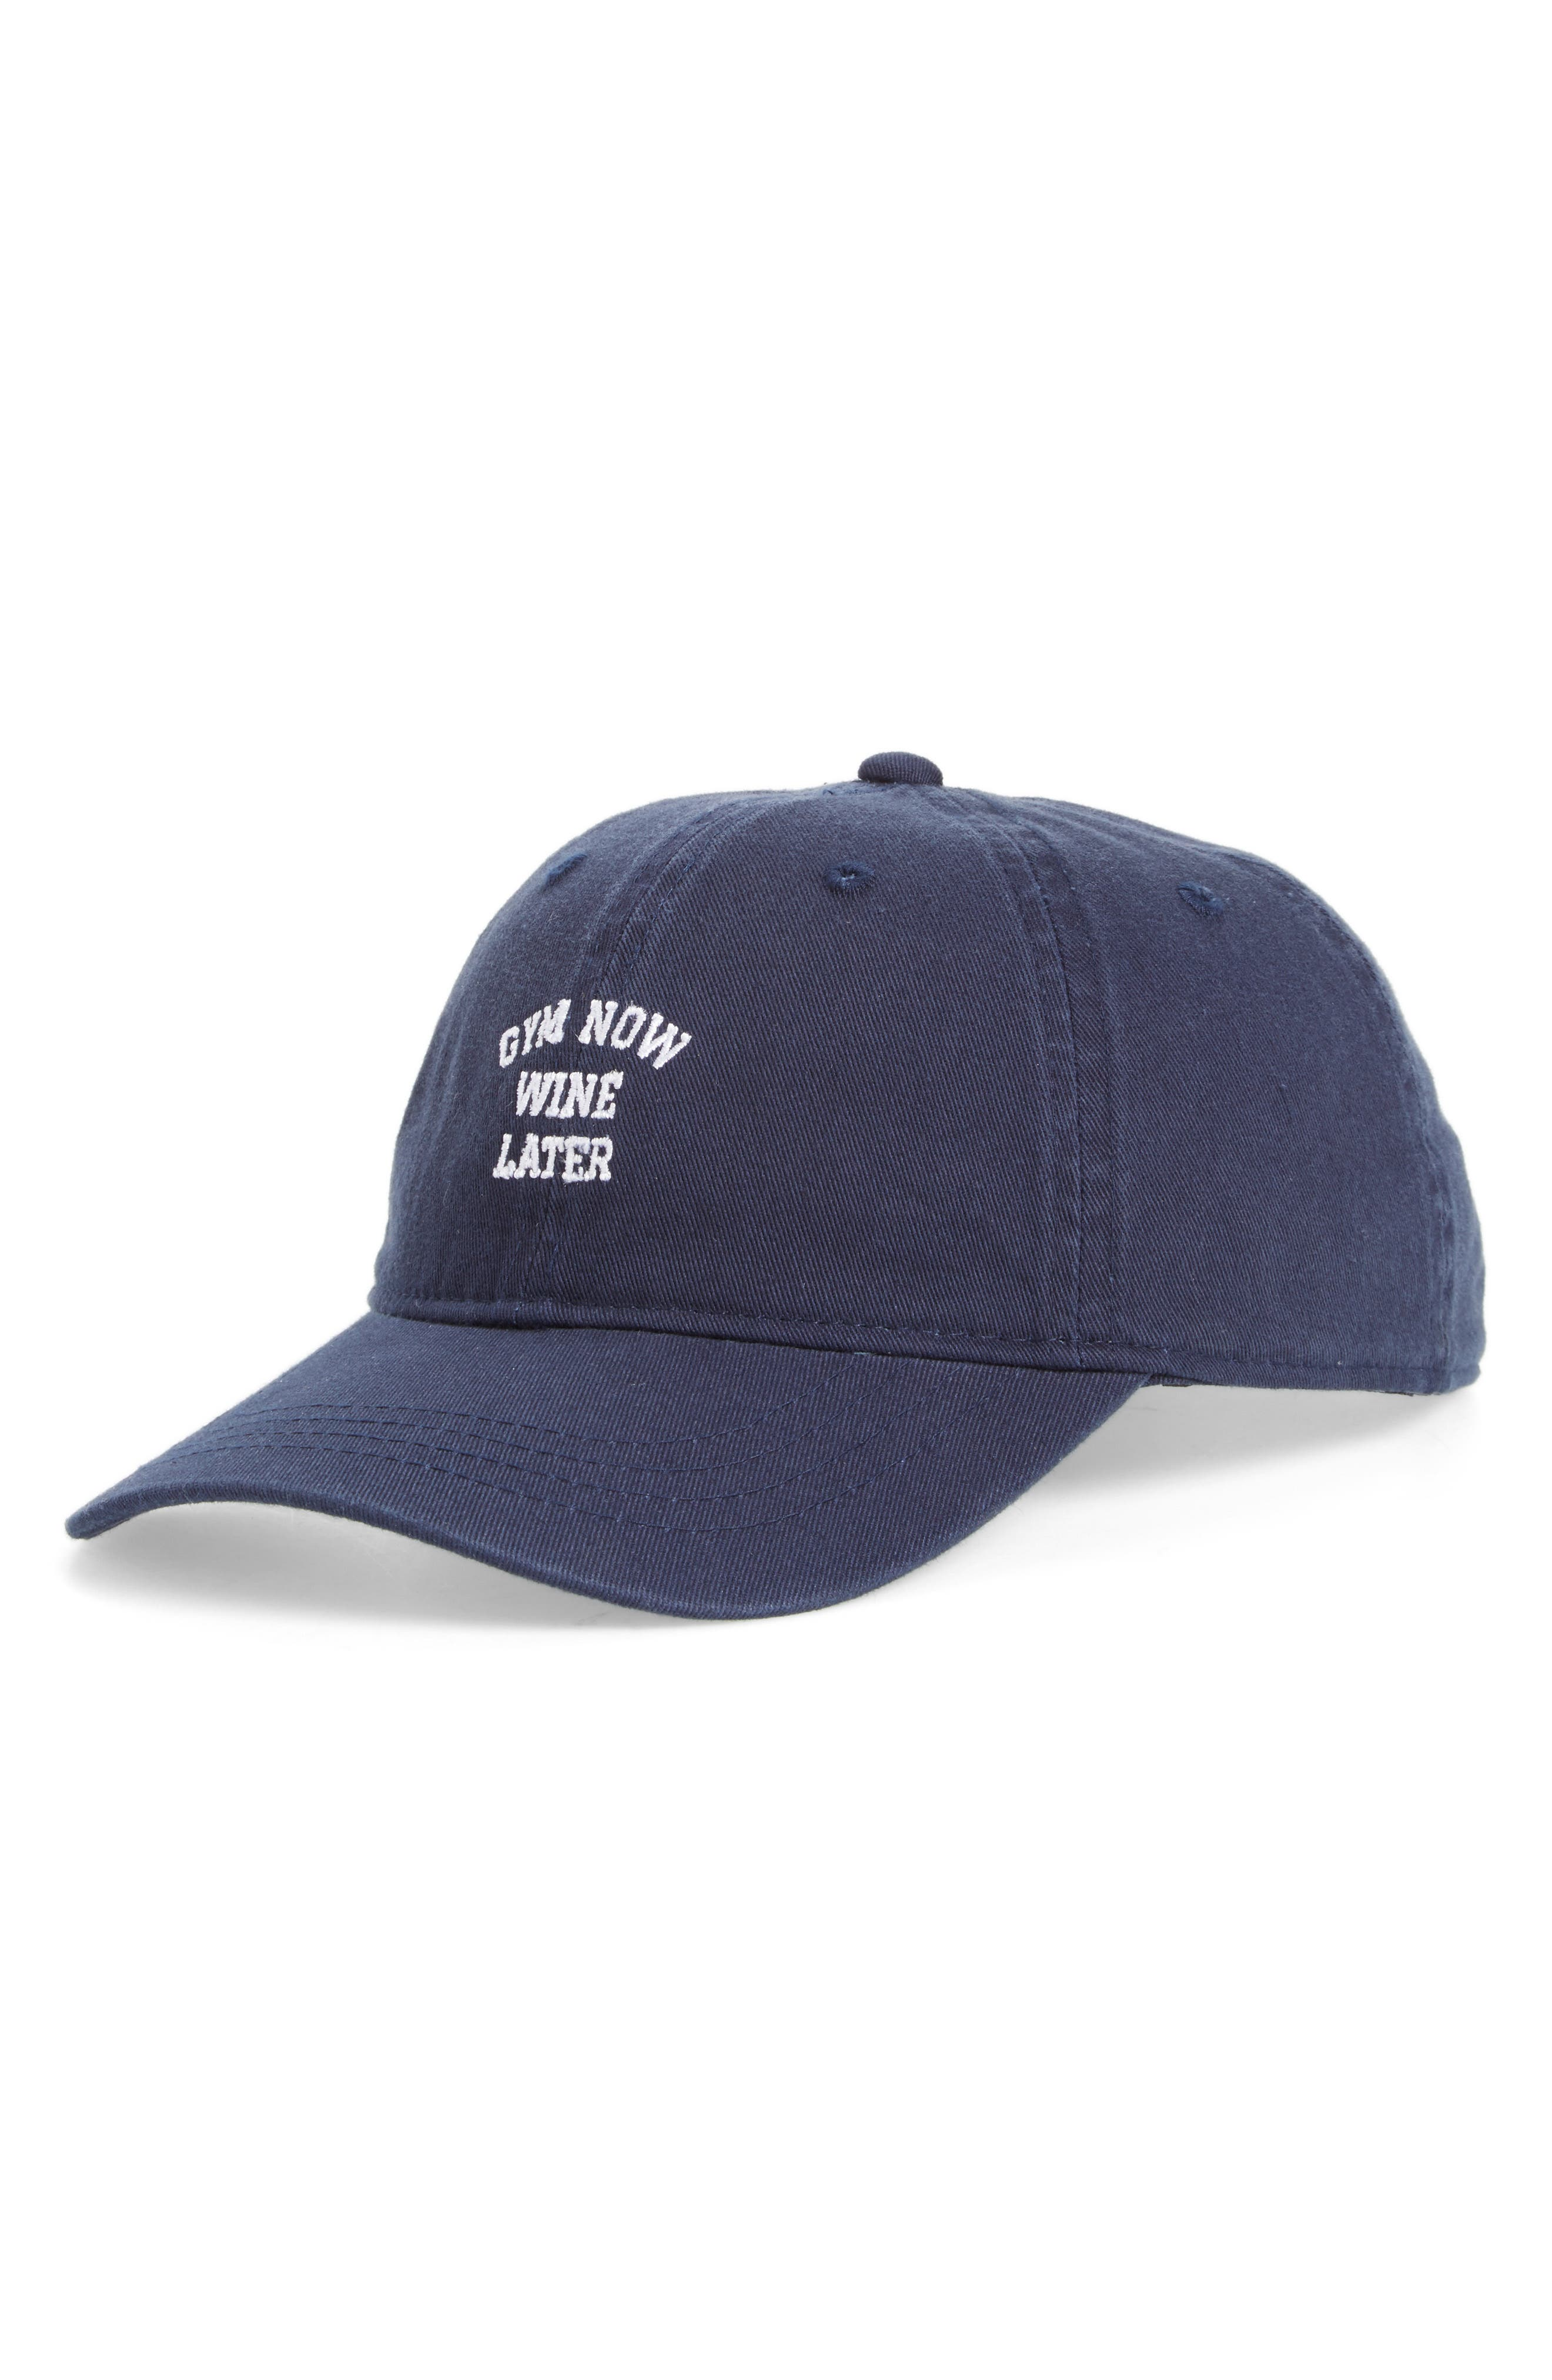 BODY RAGS CLOTHING CO. Gym Now Wine Later Baseball Cap